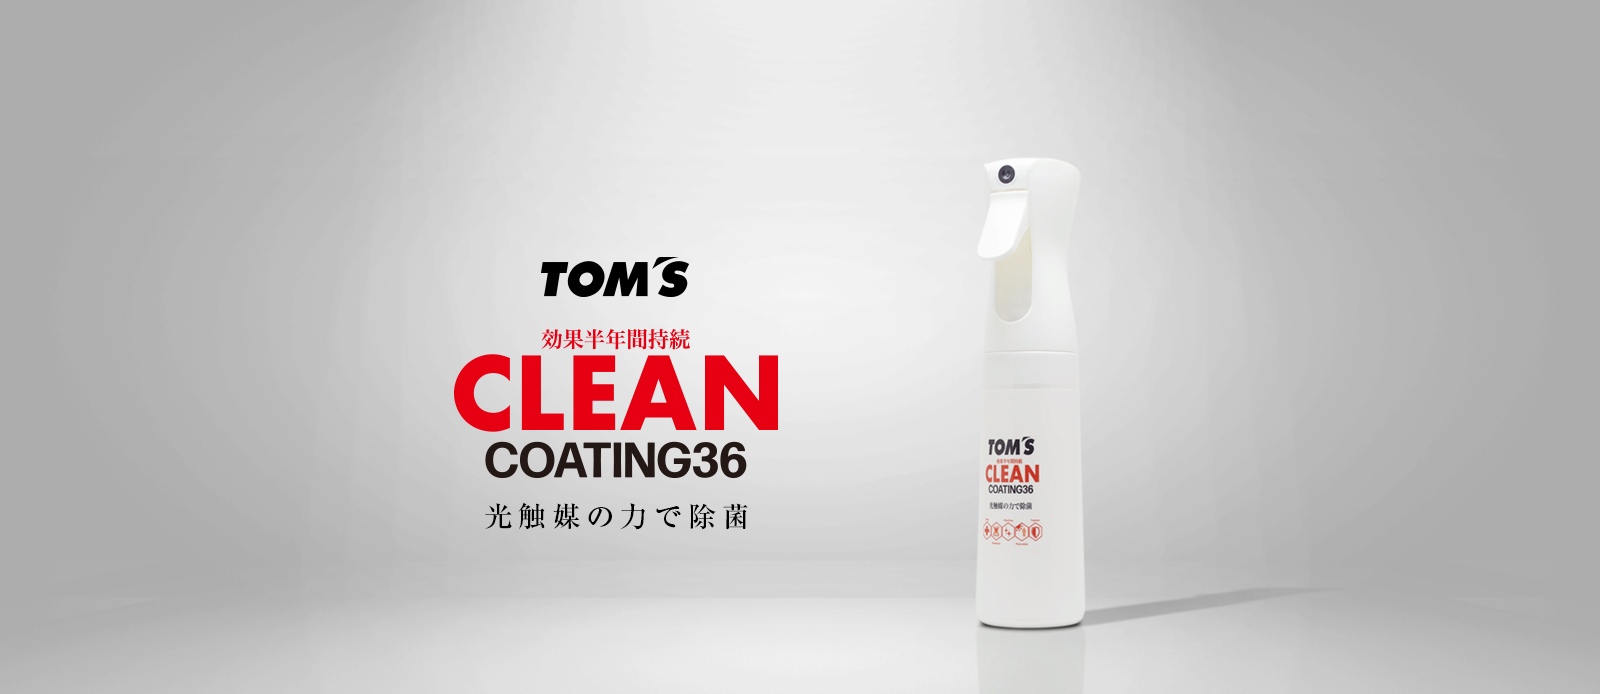 clean coating 36